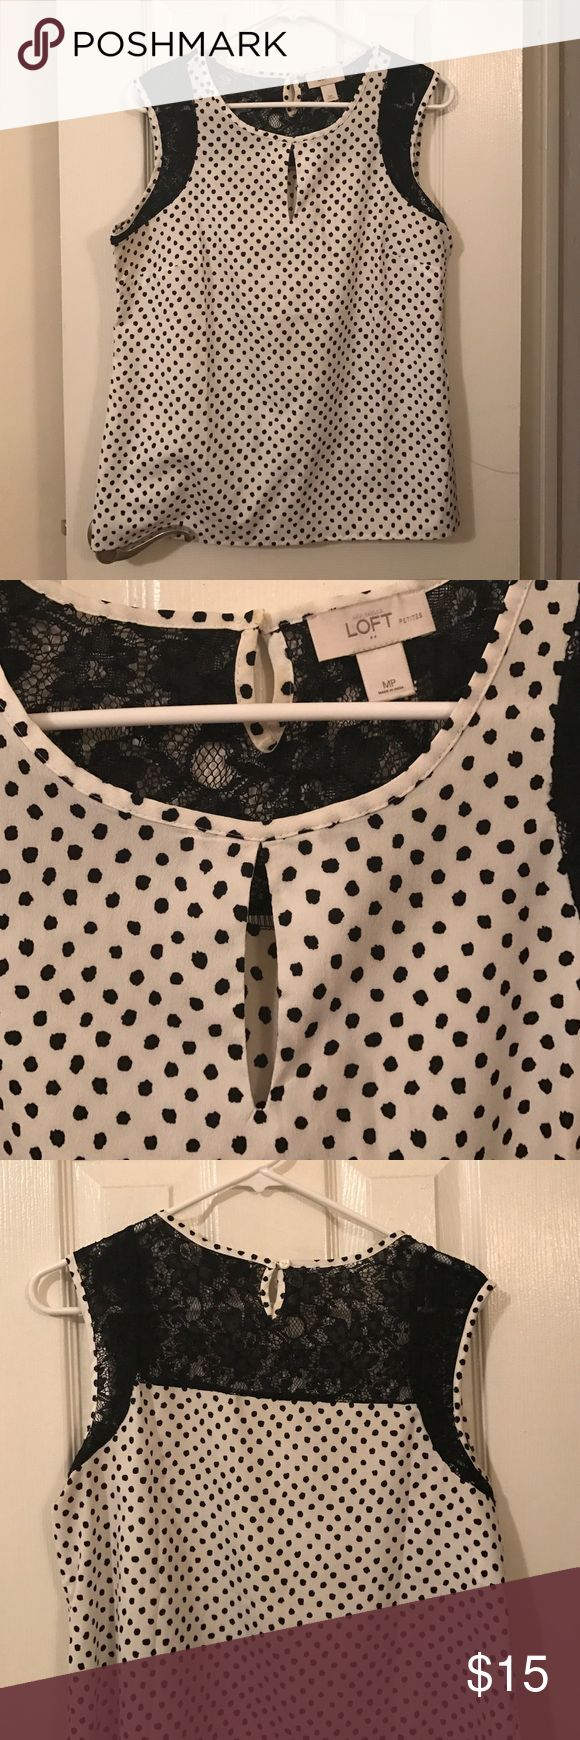 Polka dot shell top with lace Dress it up or down! Mostly cream with black polka dots but has beautiful lace details around the sleeve holes/back and an eyelet on the chest. LOFT Tops Blouses